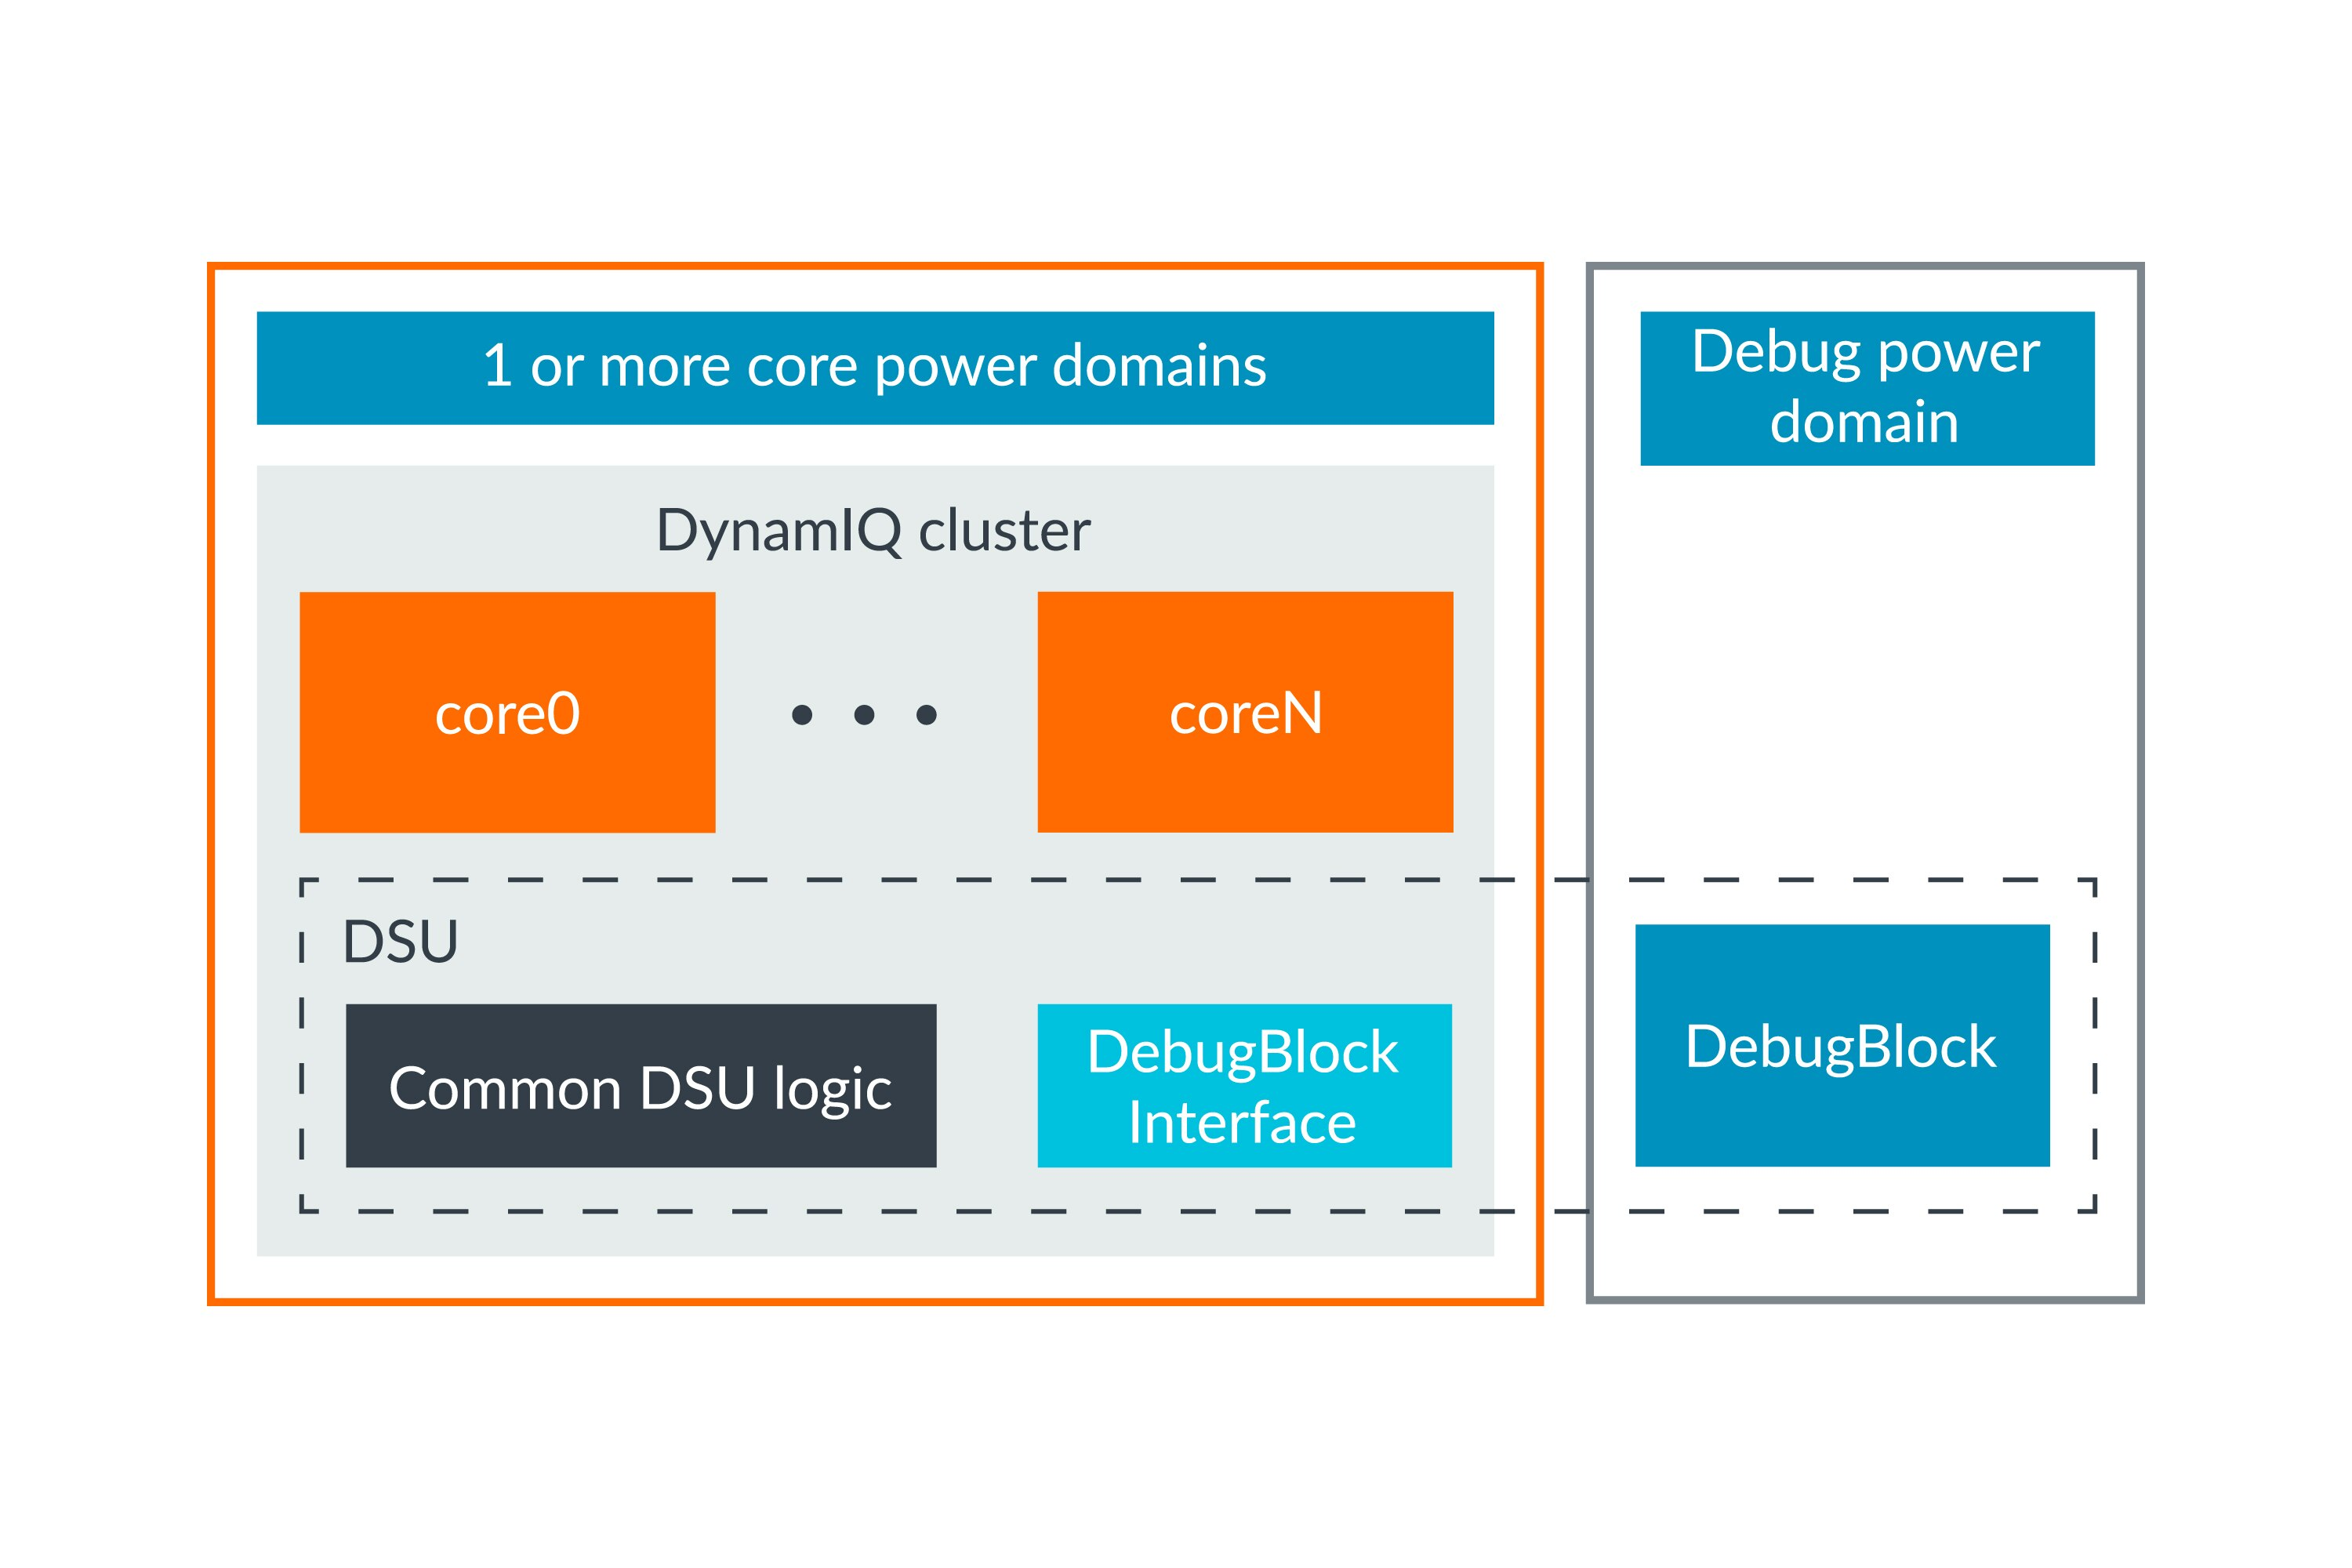 This image shows the possible power domain divide between the core and the DSU logic and the DSU Debug Block